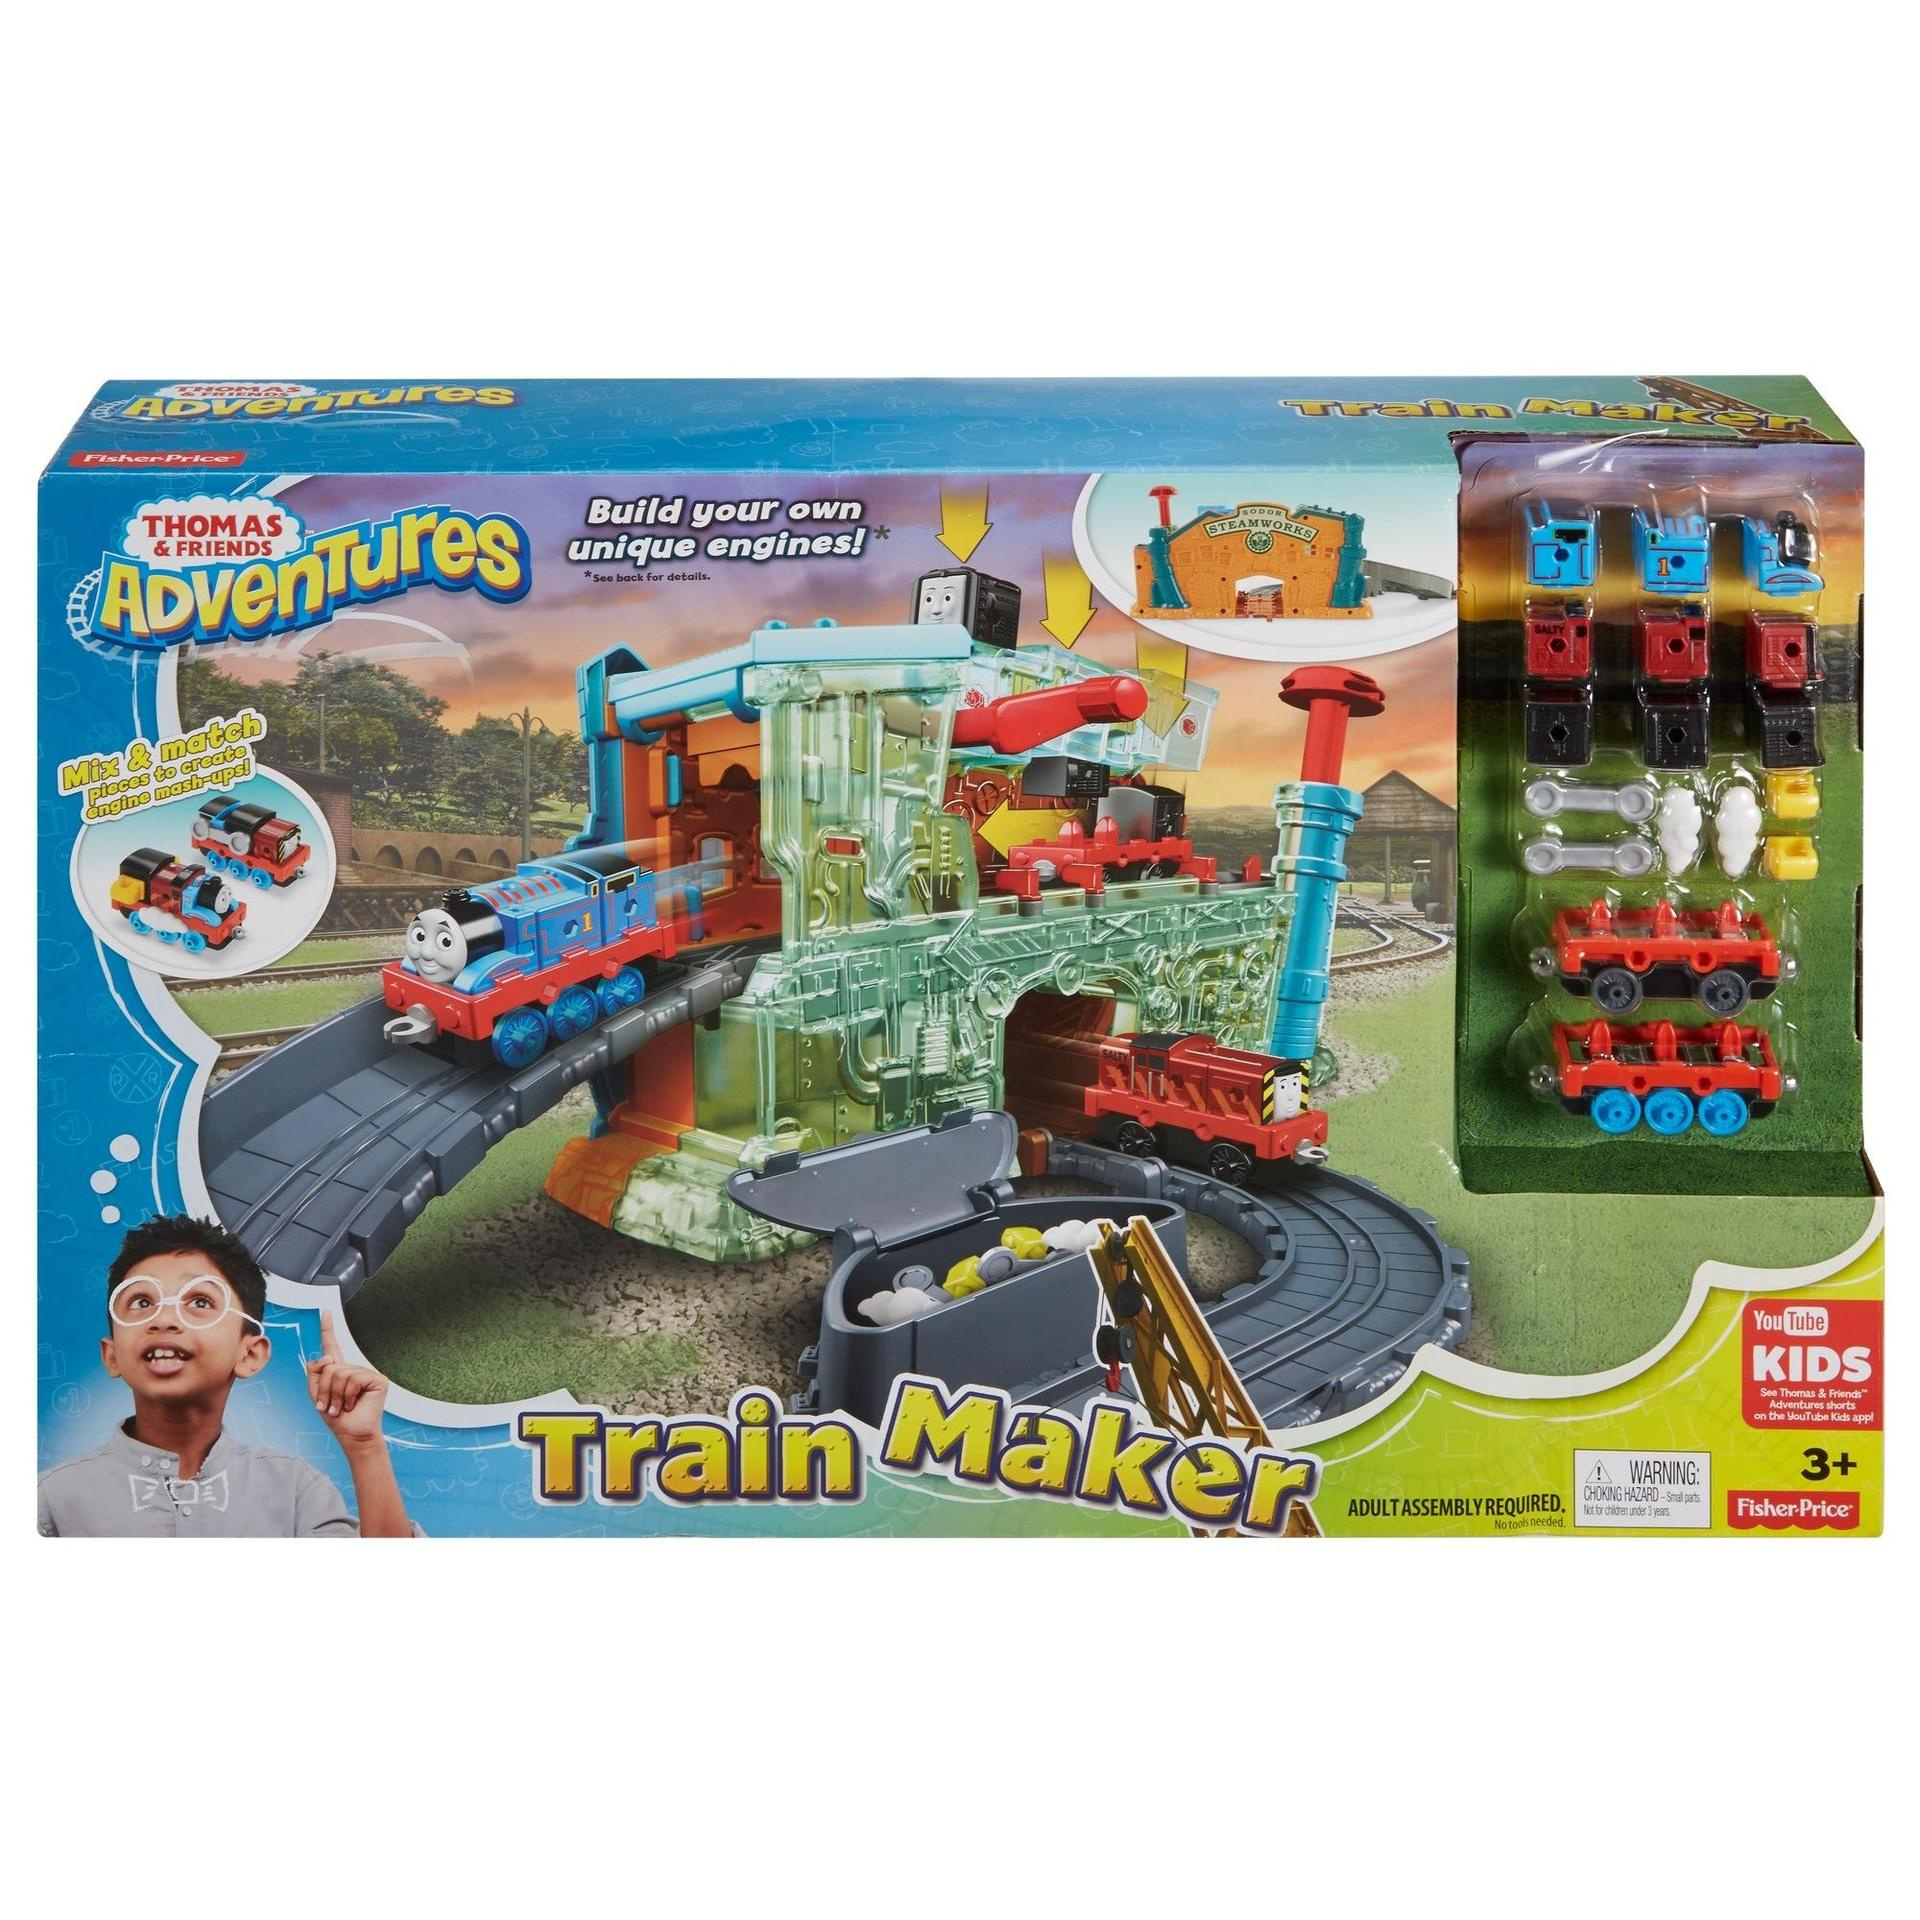 THOMAS & FRIENDS ADVENTURES TRAIN MAKER